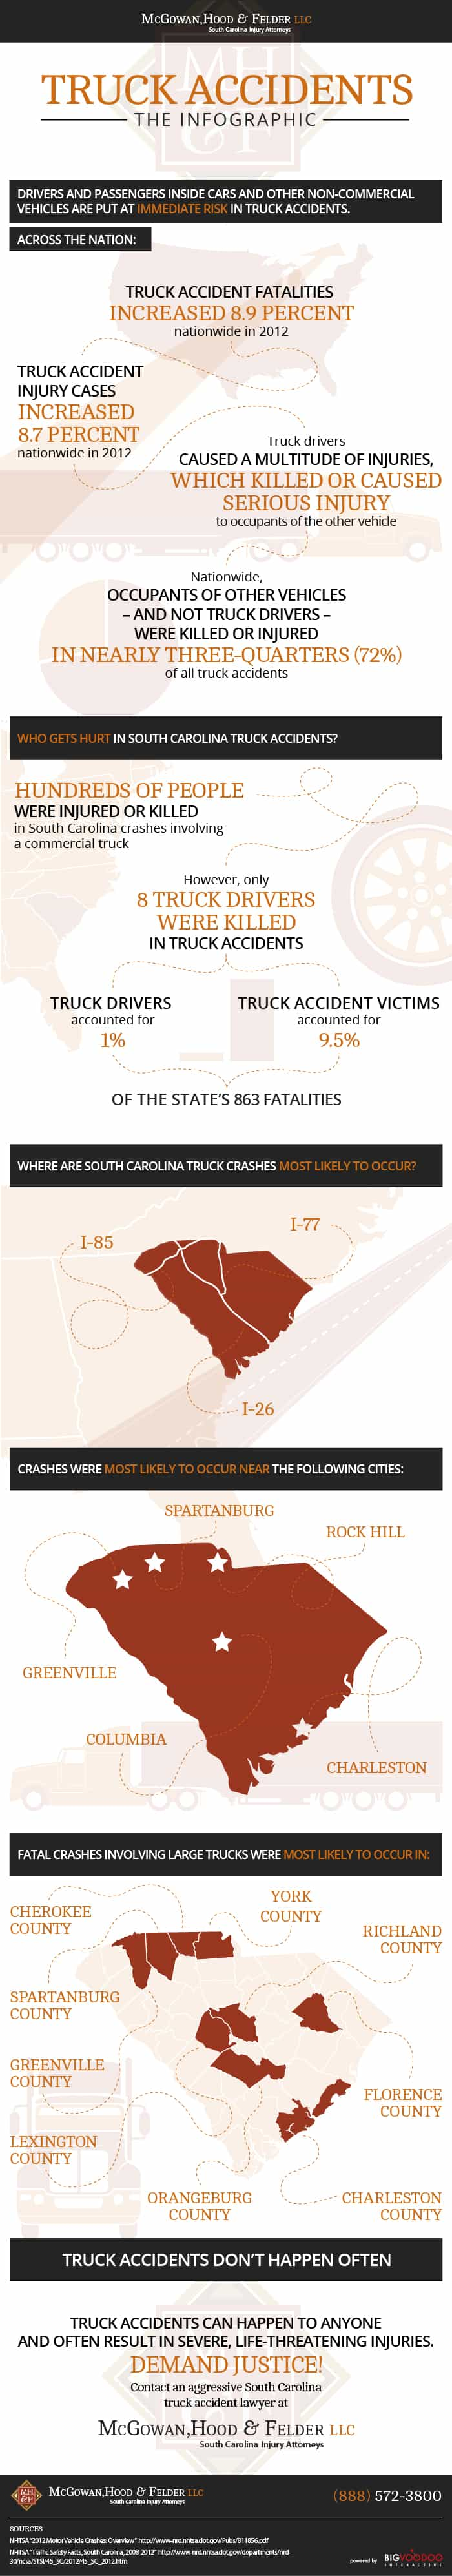 McGowan-Hood-Truck-Accident-Lawyer-Infographic